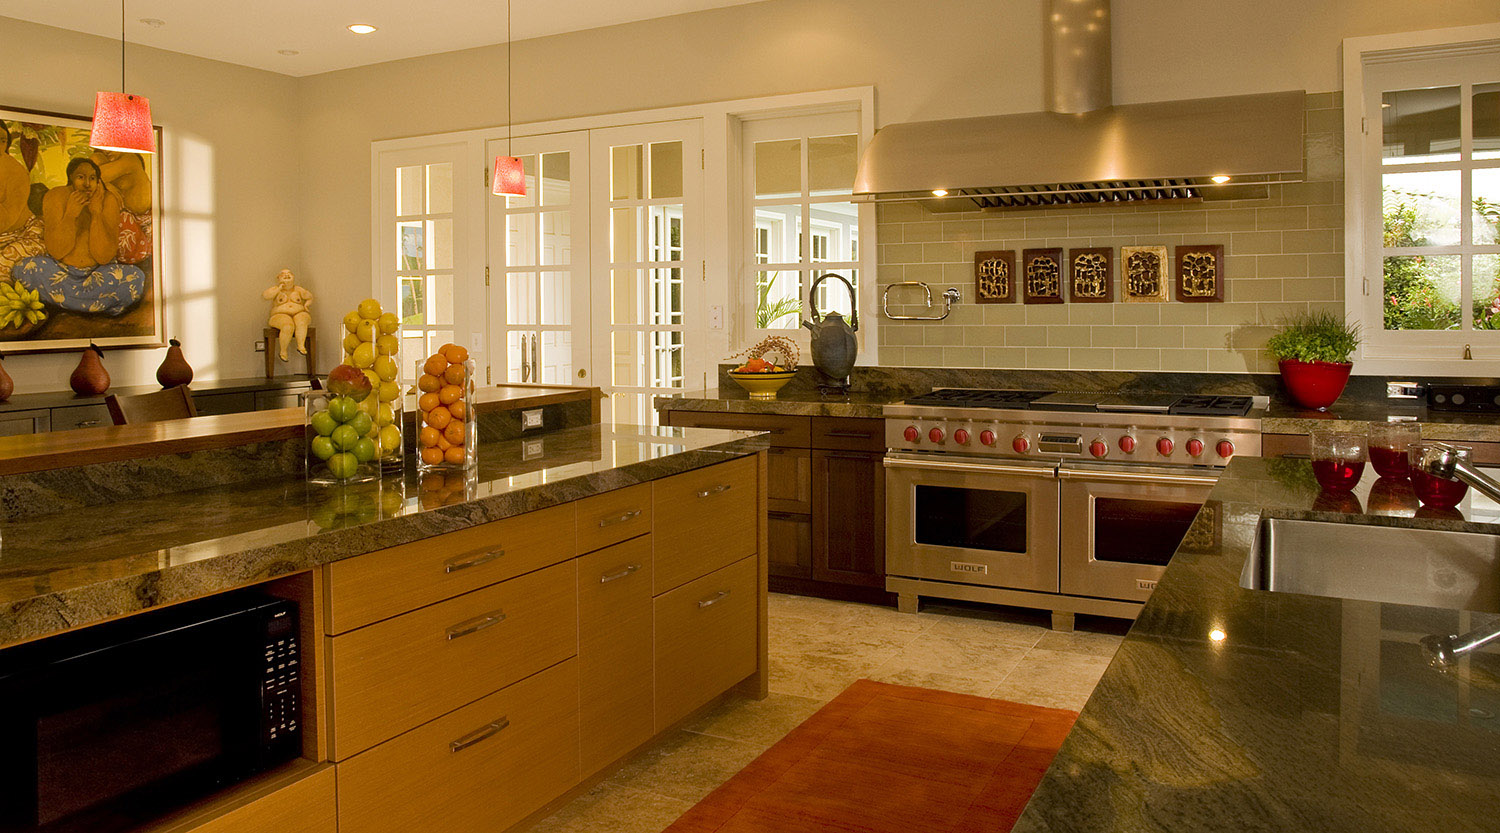 lifestyledesignstudioinc kitchen remodel hawaii Lifestyle Design Studio Inc lifestyle design studio kitchens kitchen